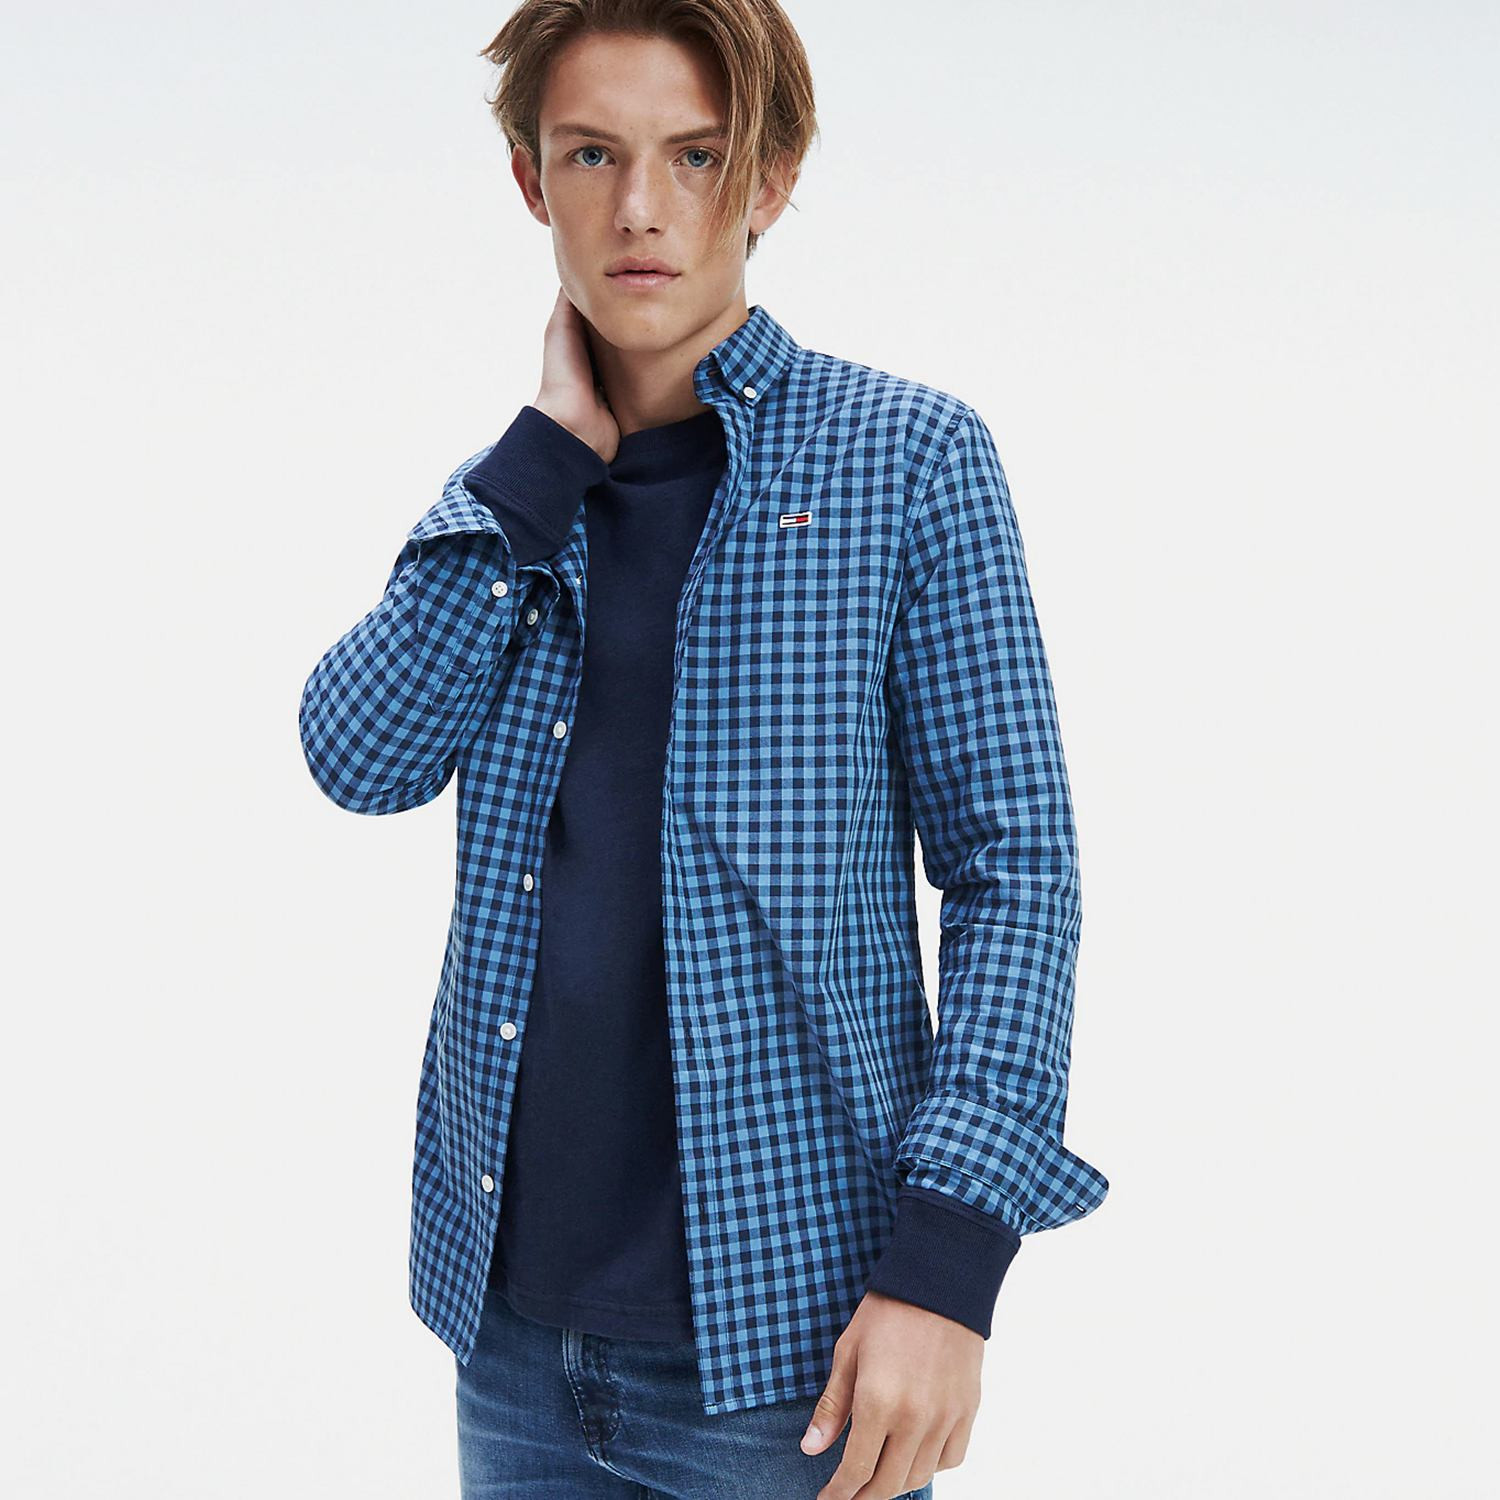 Tommy Jeans GINGHAM SHIRT (9000039597_16053)